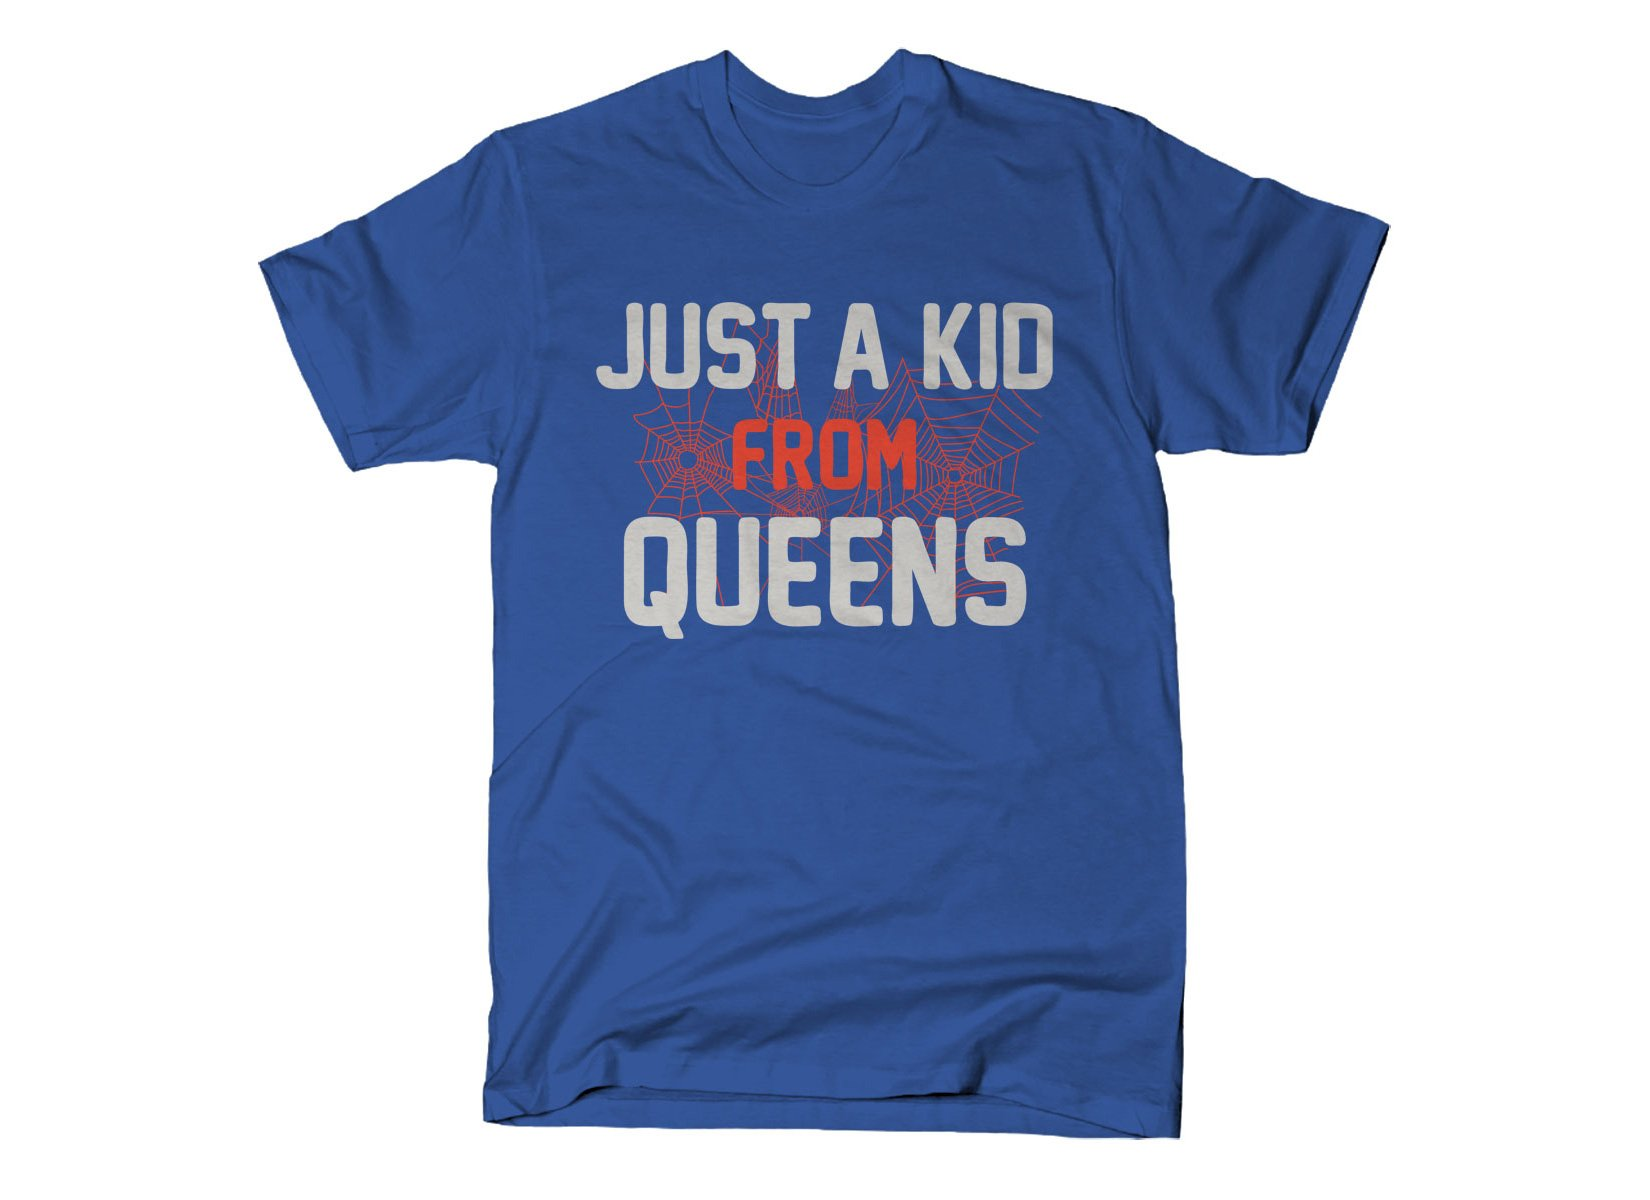 Just A Kid From Queens on Mens T-Shirt